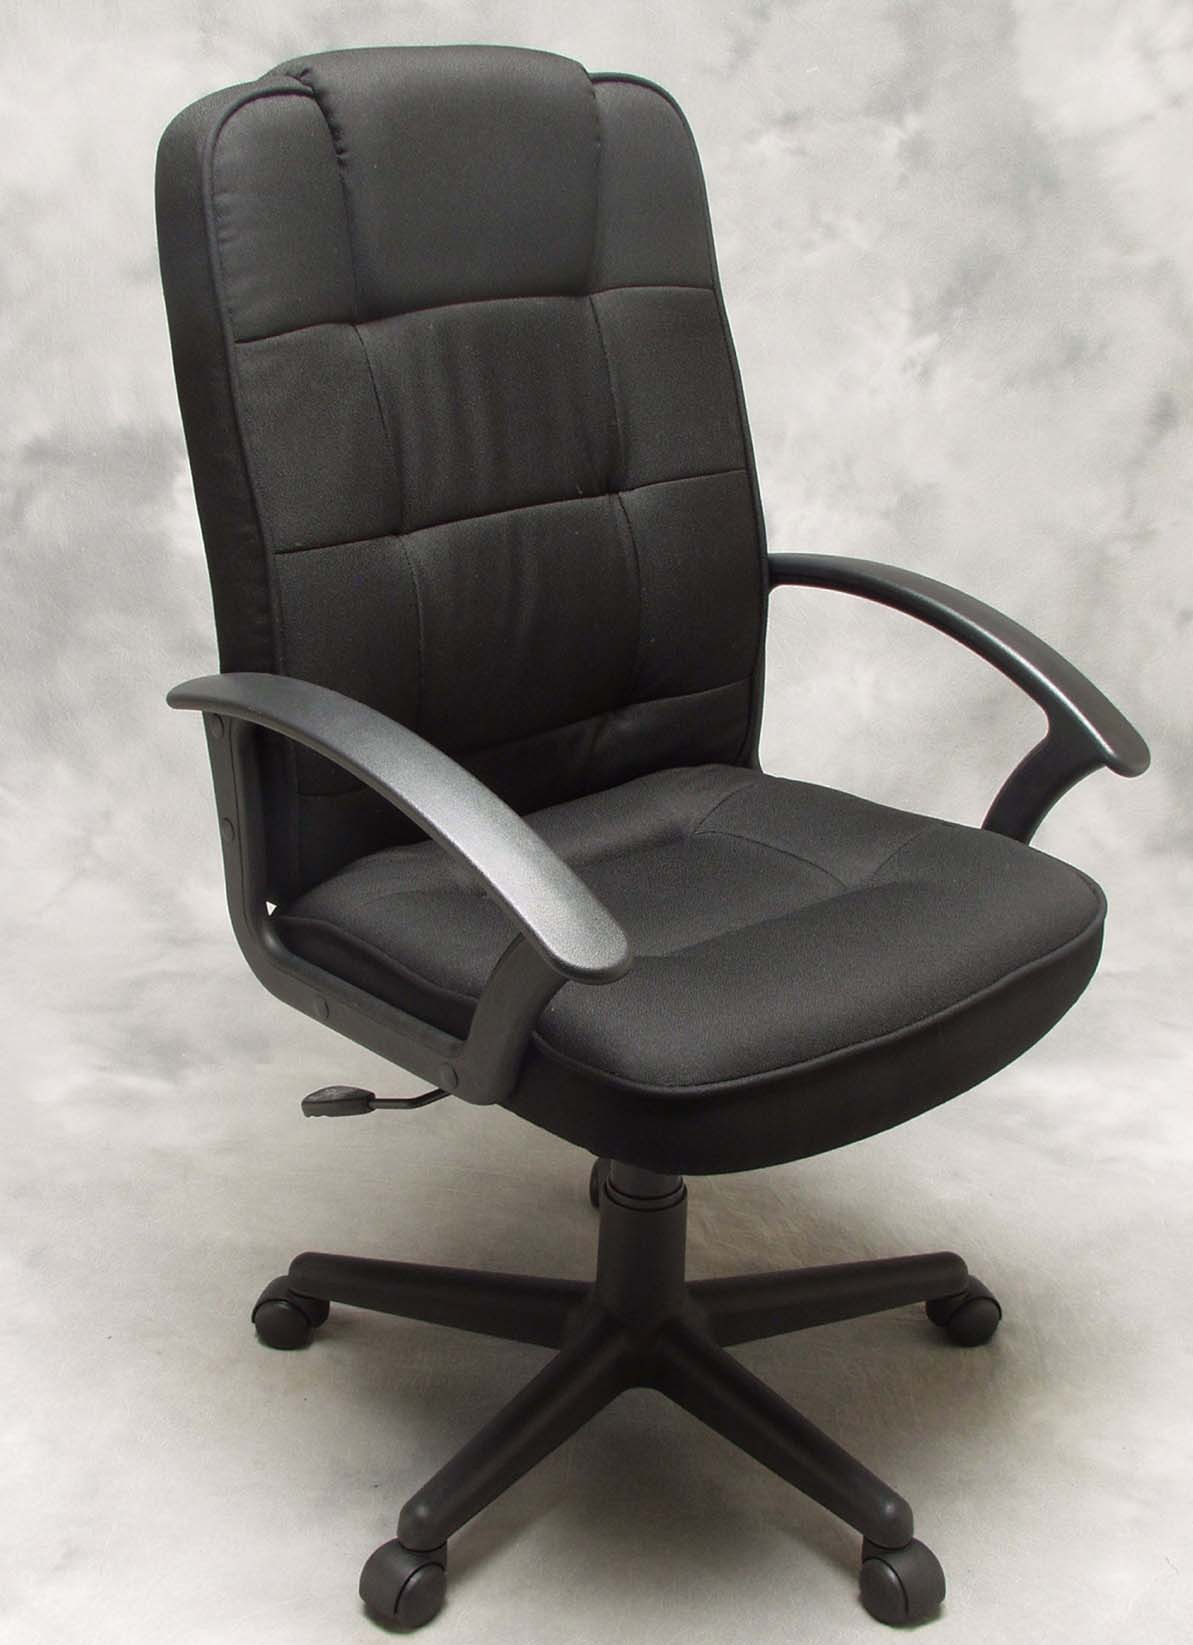 Office Chairs At Staples Cpsc Gruga U S A Announce Recall To Repair Office Chairs Sold At